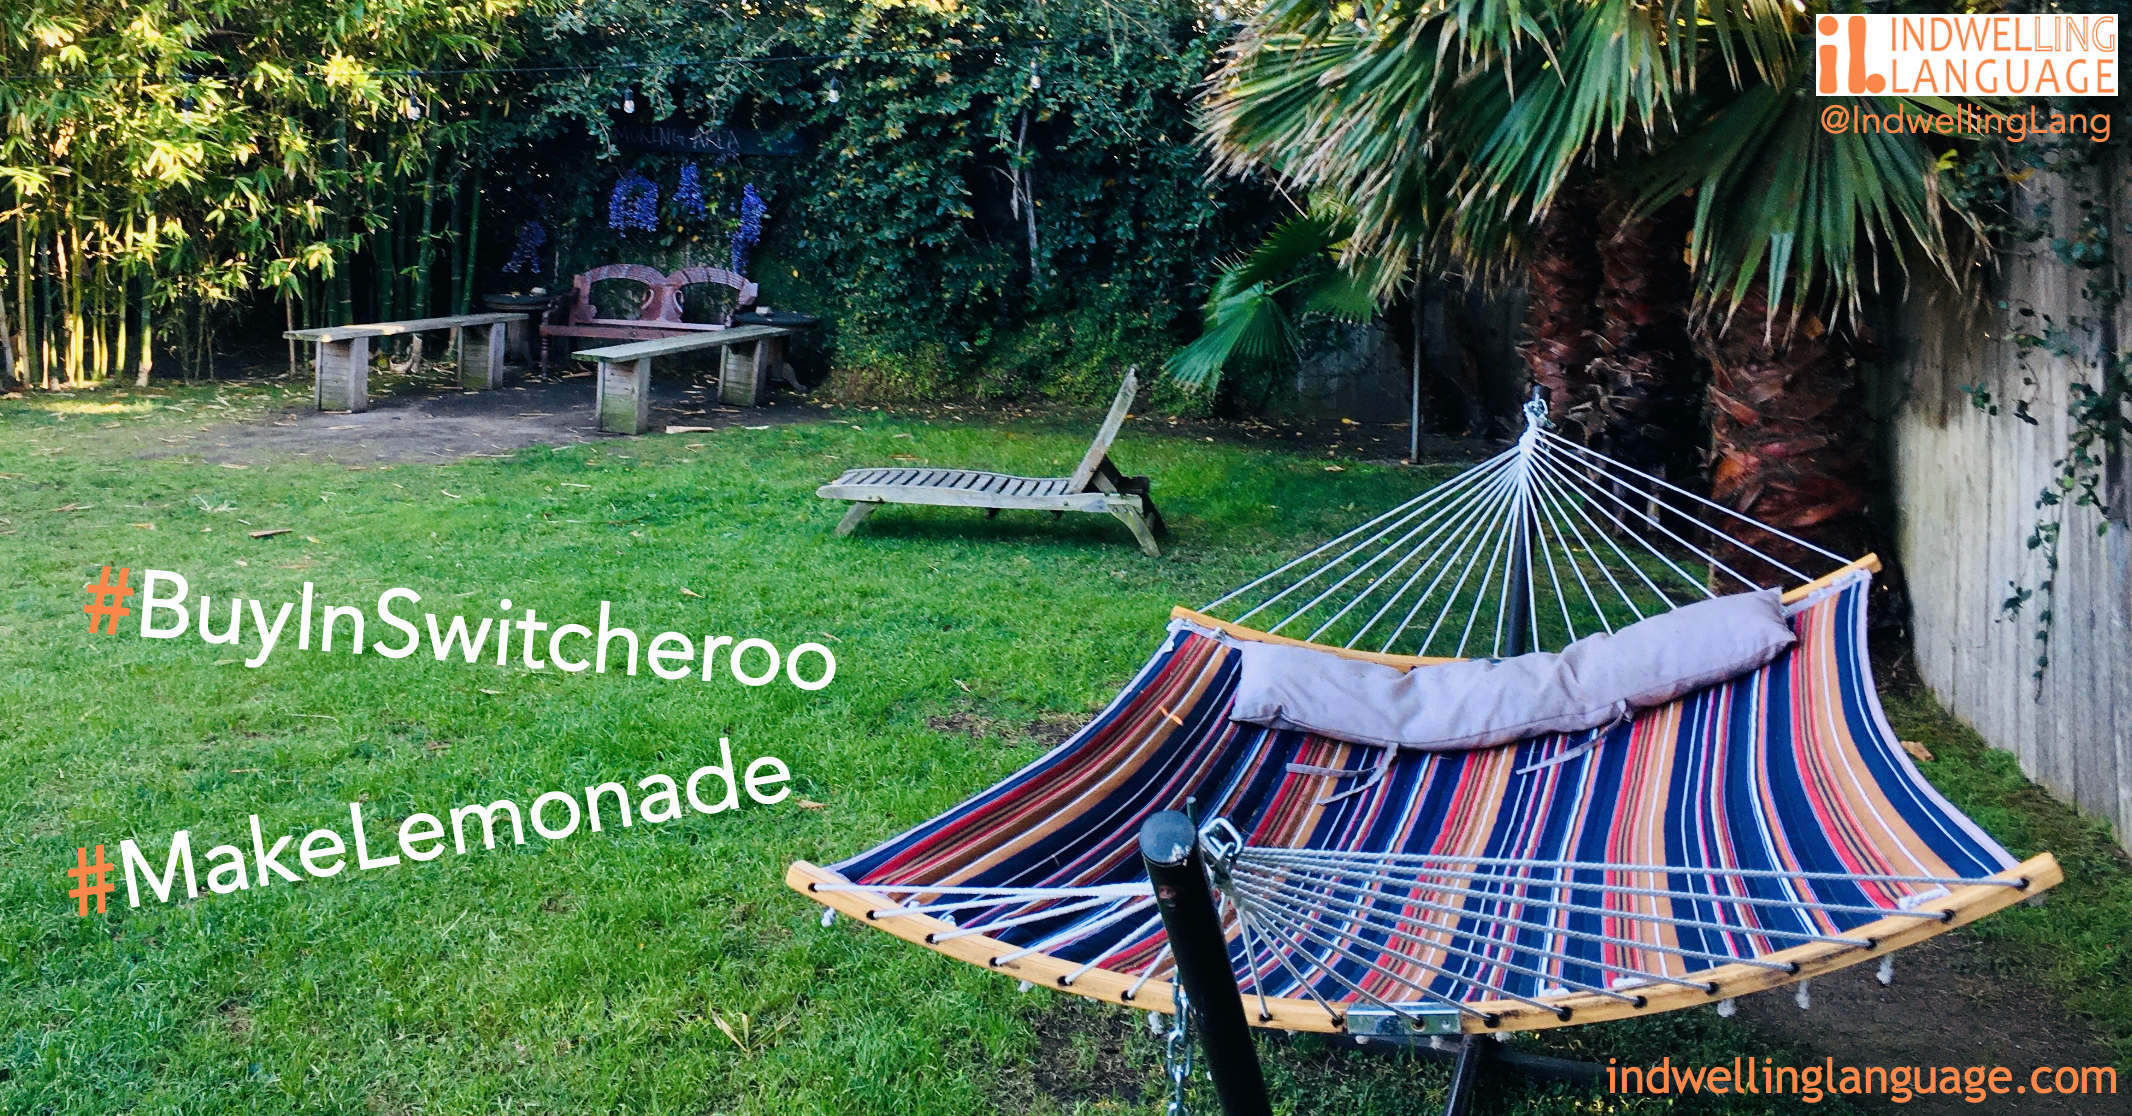 Banner with colorful hammock in California backyard and hashtags #BuyInSwitcheroo and #MakeLemonade